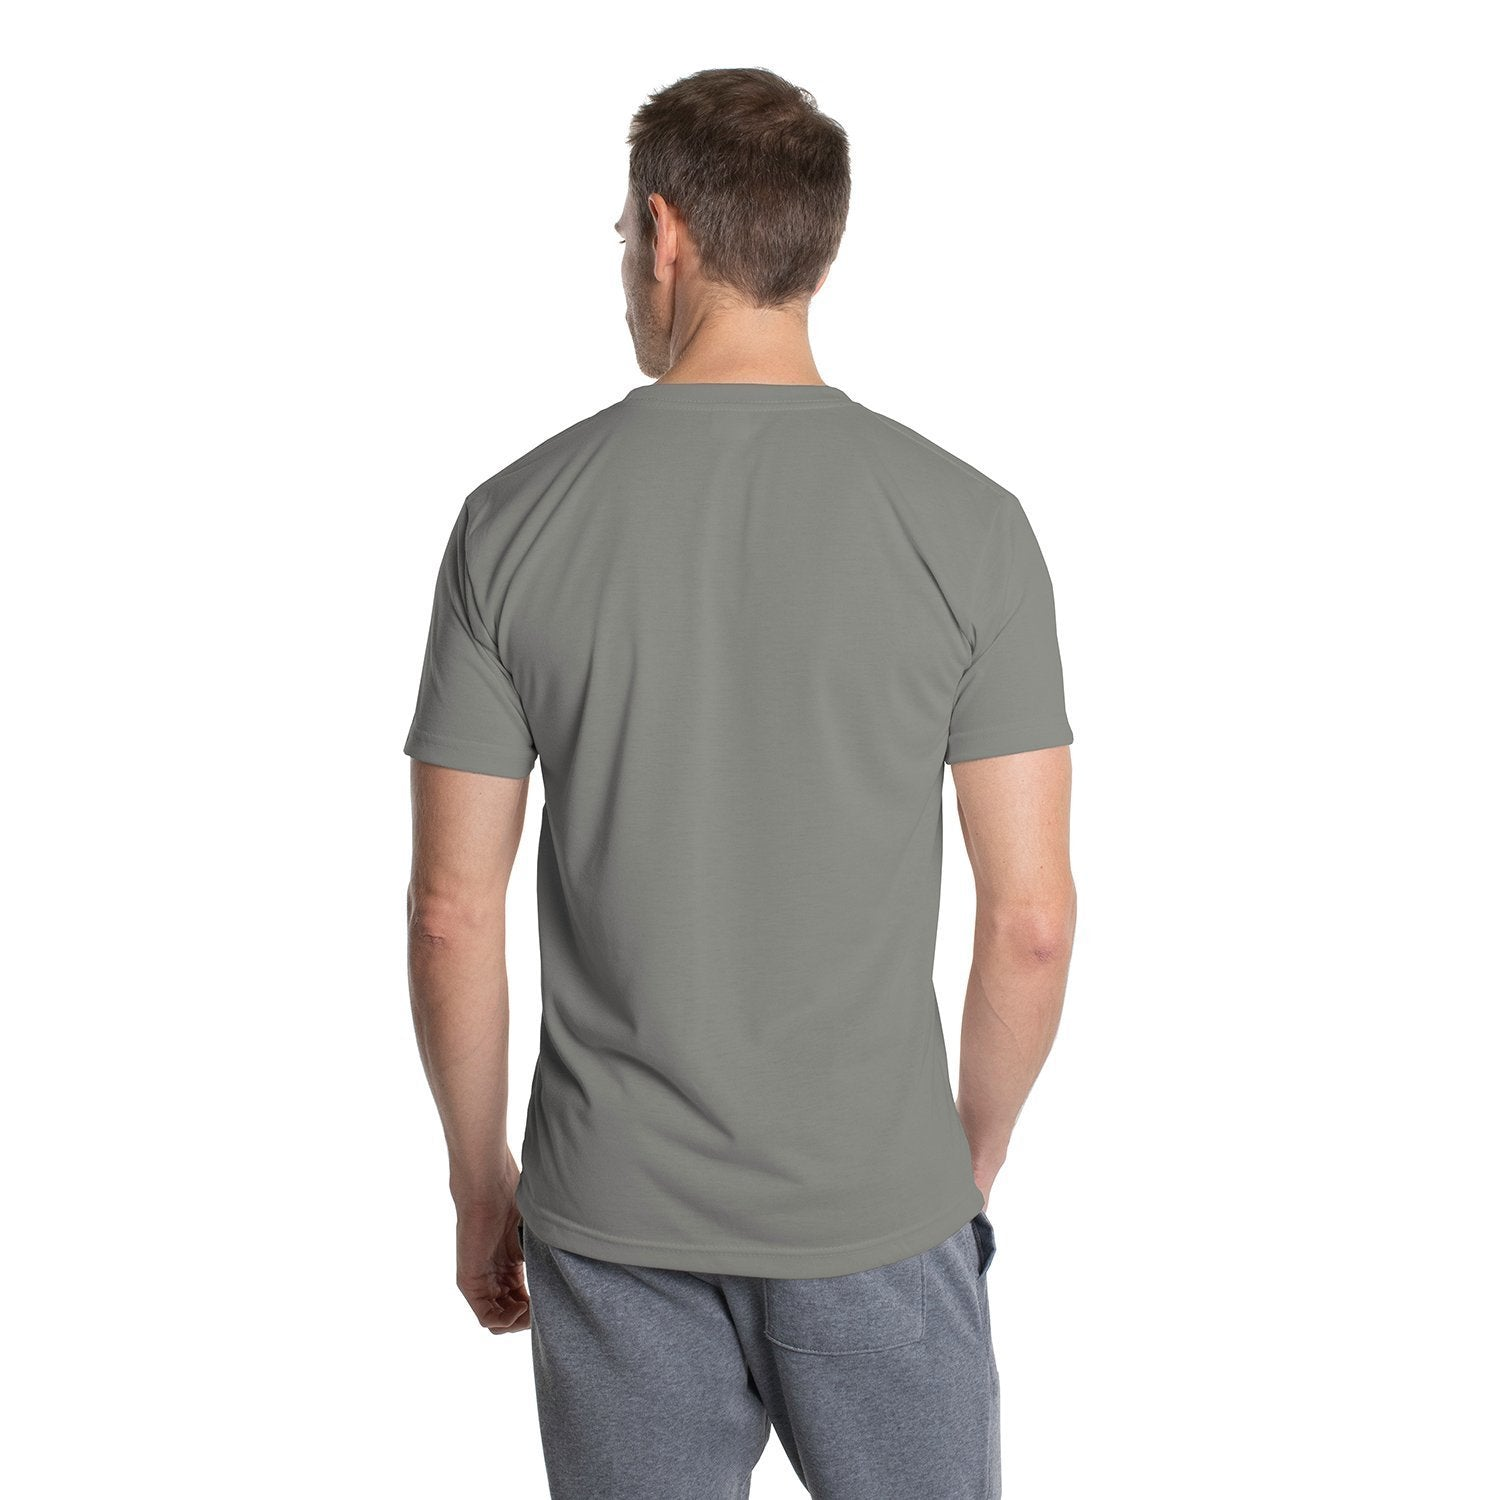 A1SJBBST Basic Performance T-Shirt - Steel